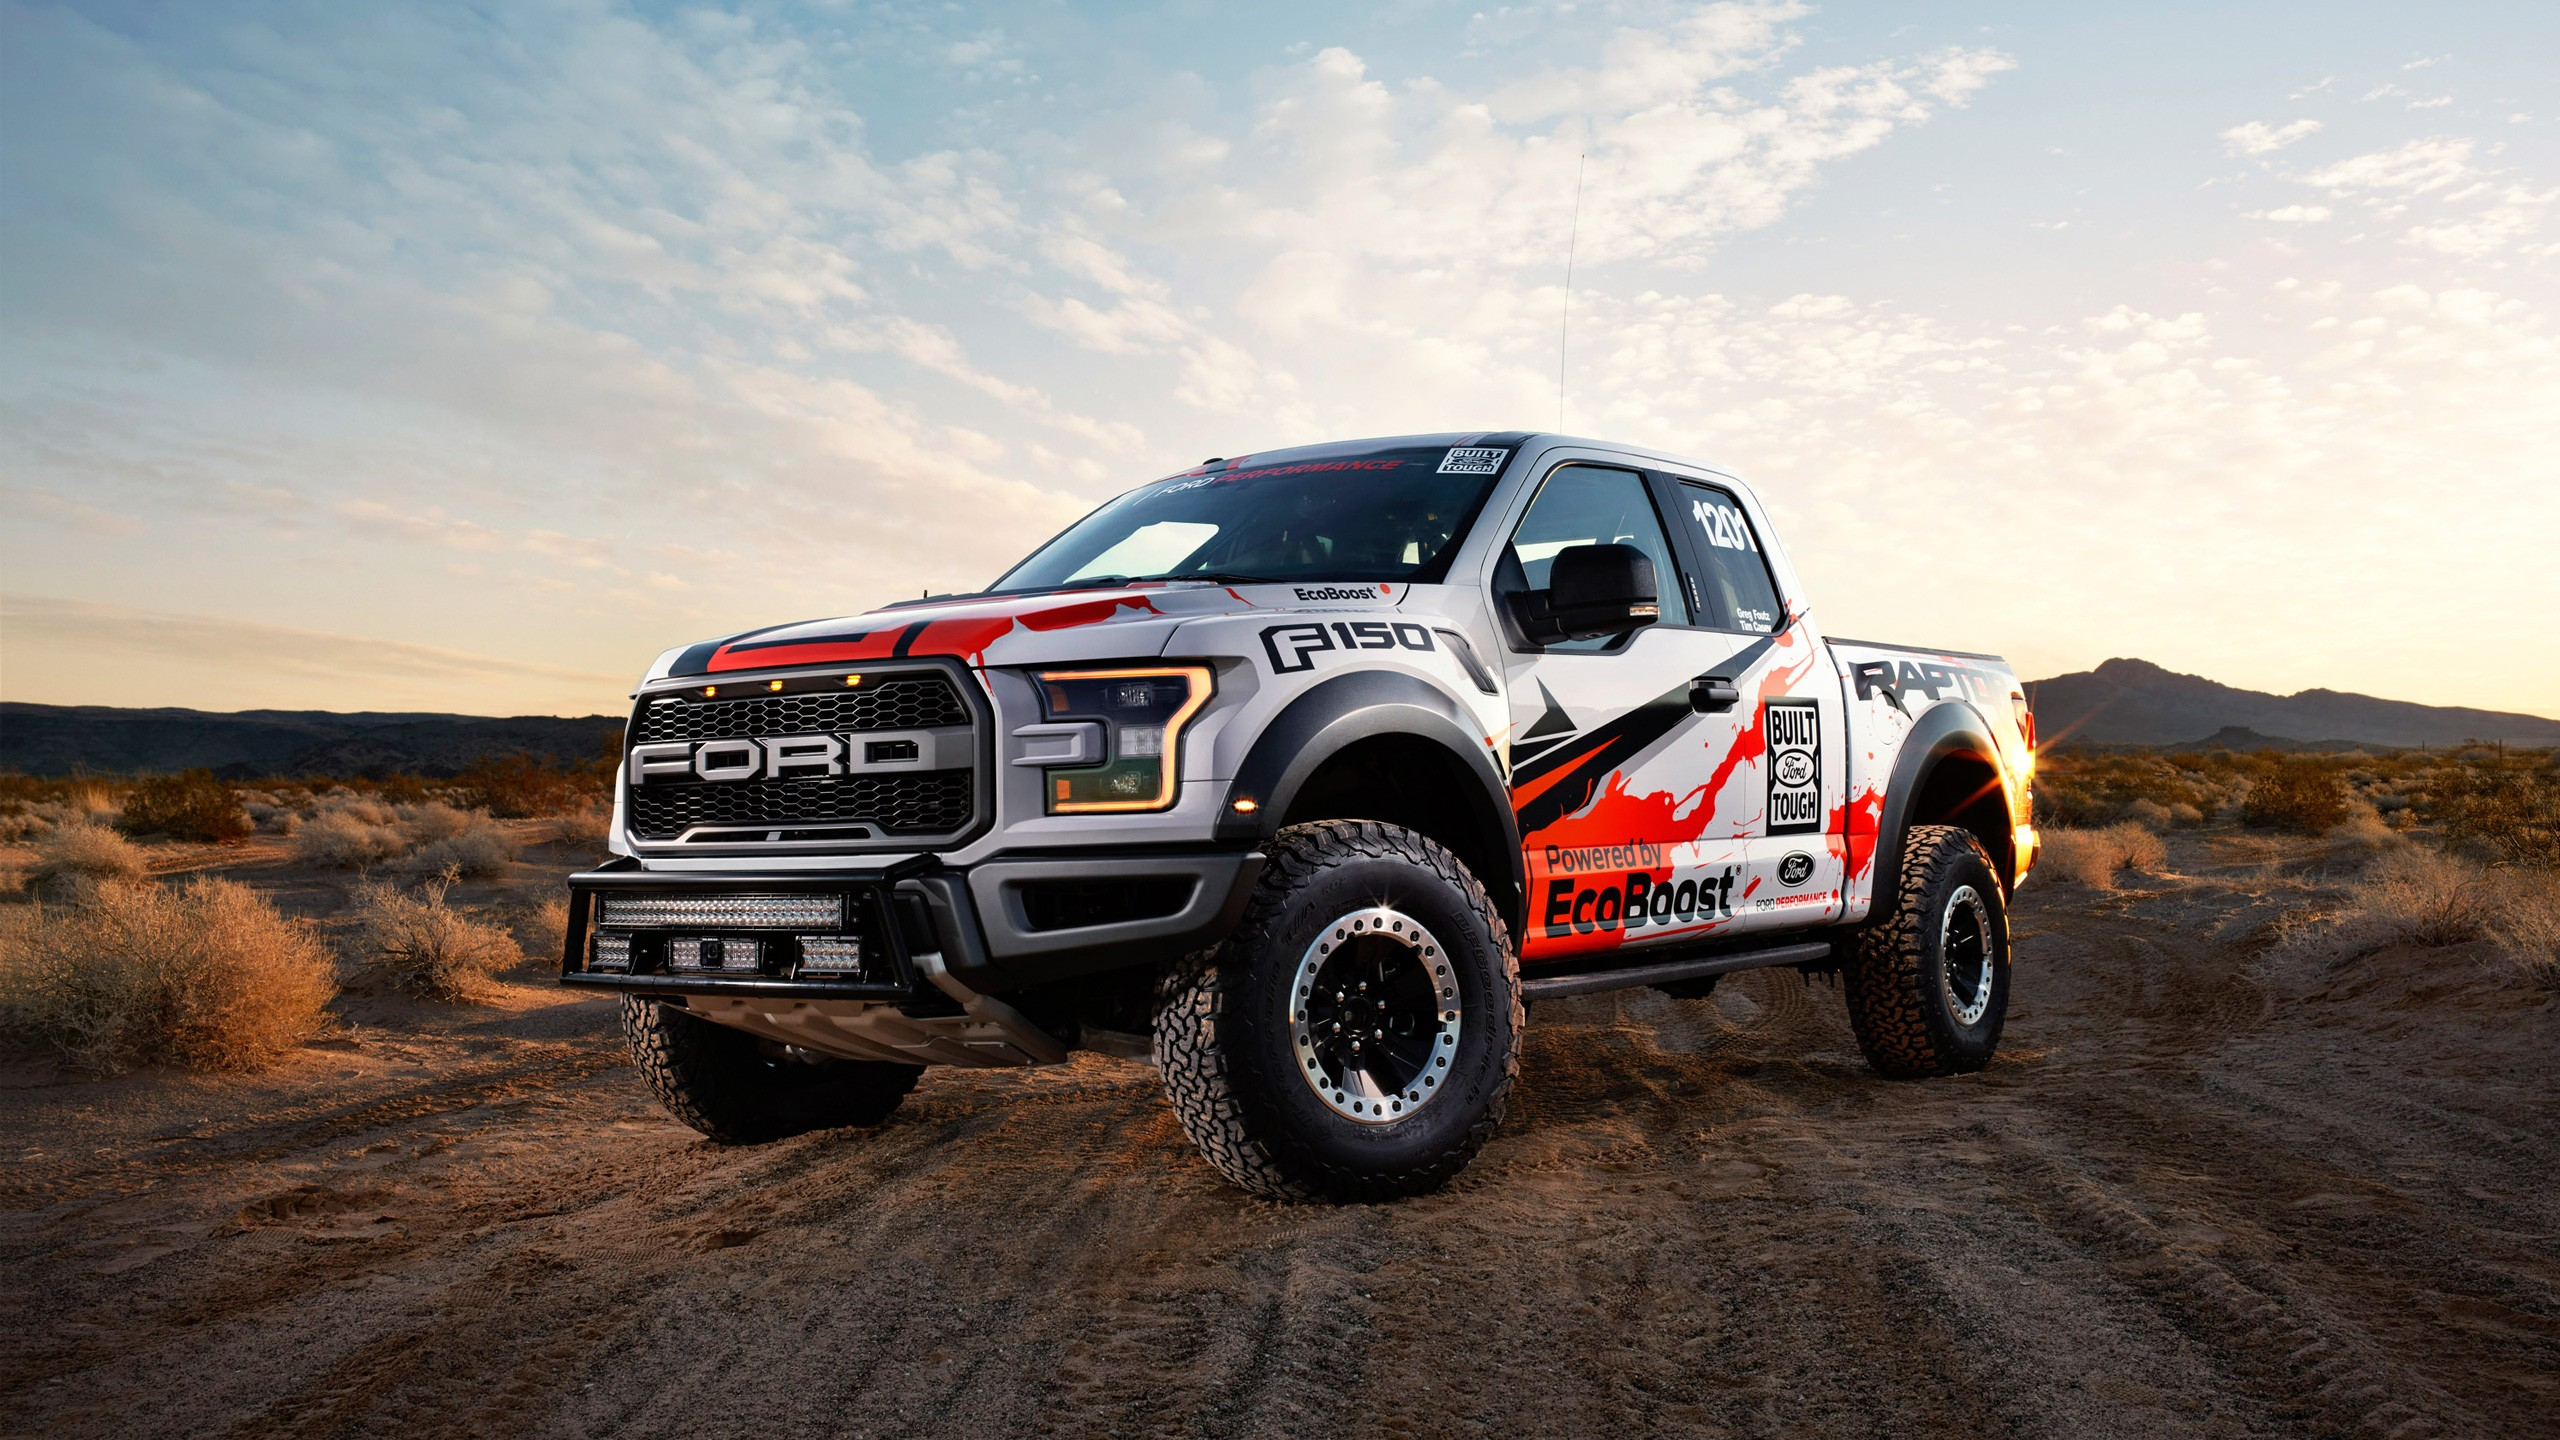 4k Wallpaper Muscle Car Ford F 150 Raptor 2016 Wallpapers Hd Wallpapers Id 17843